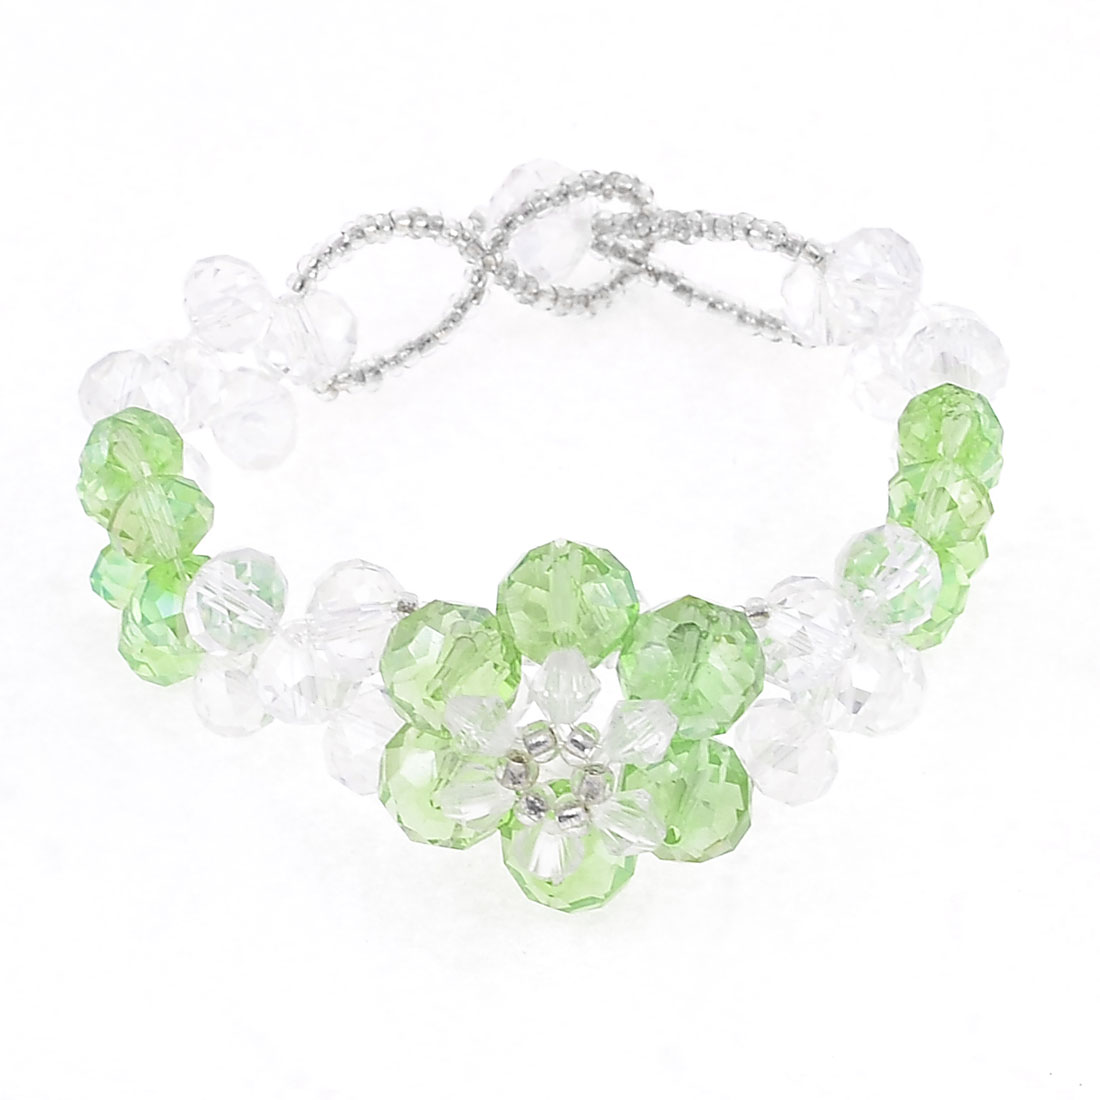 Plastic Crystal Foldable Bracelet Bangle Clear Green for Lady